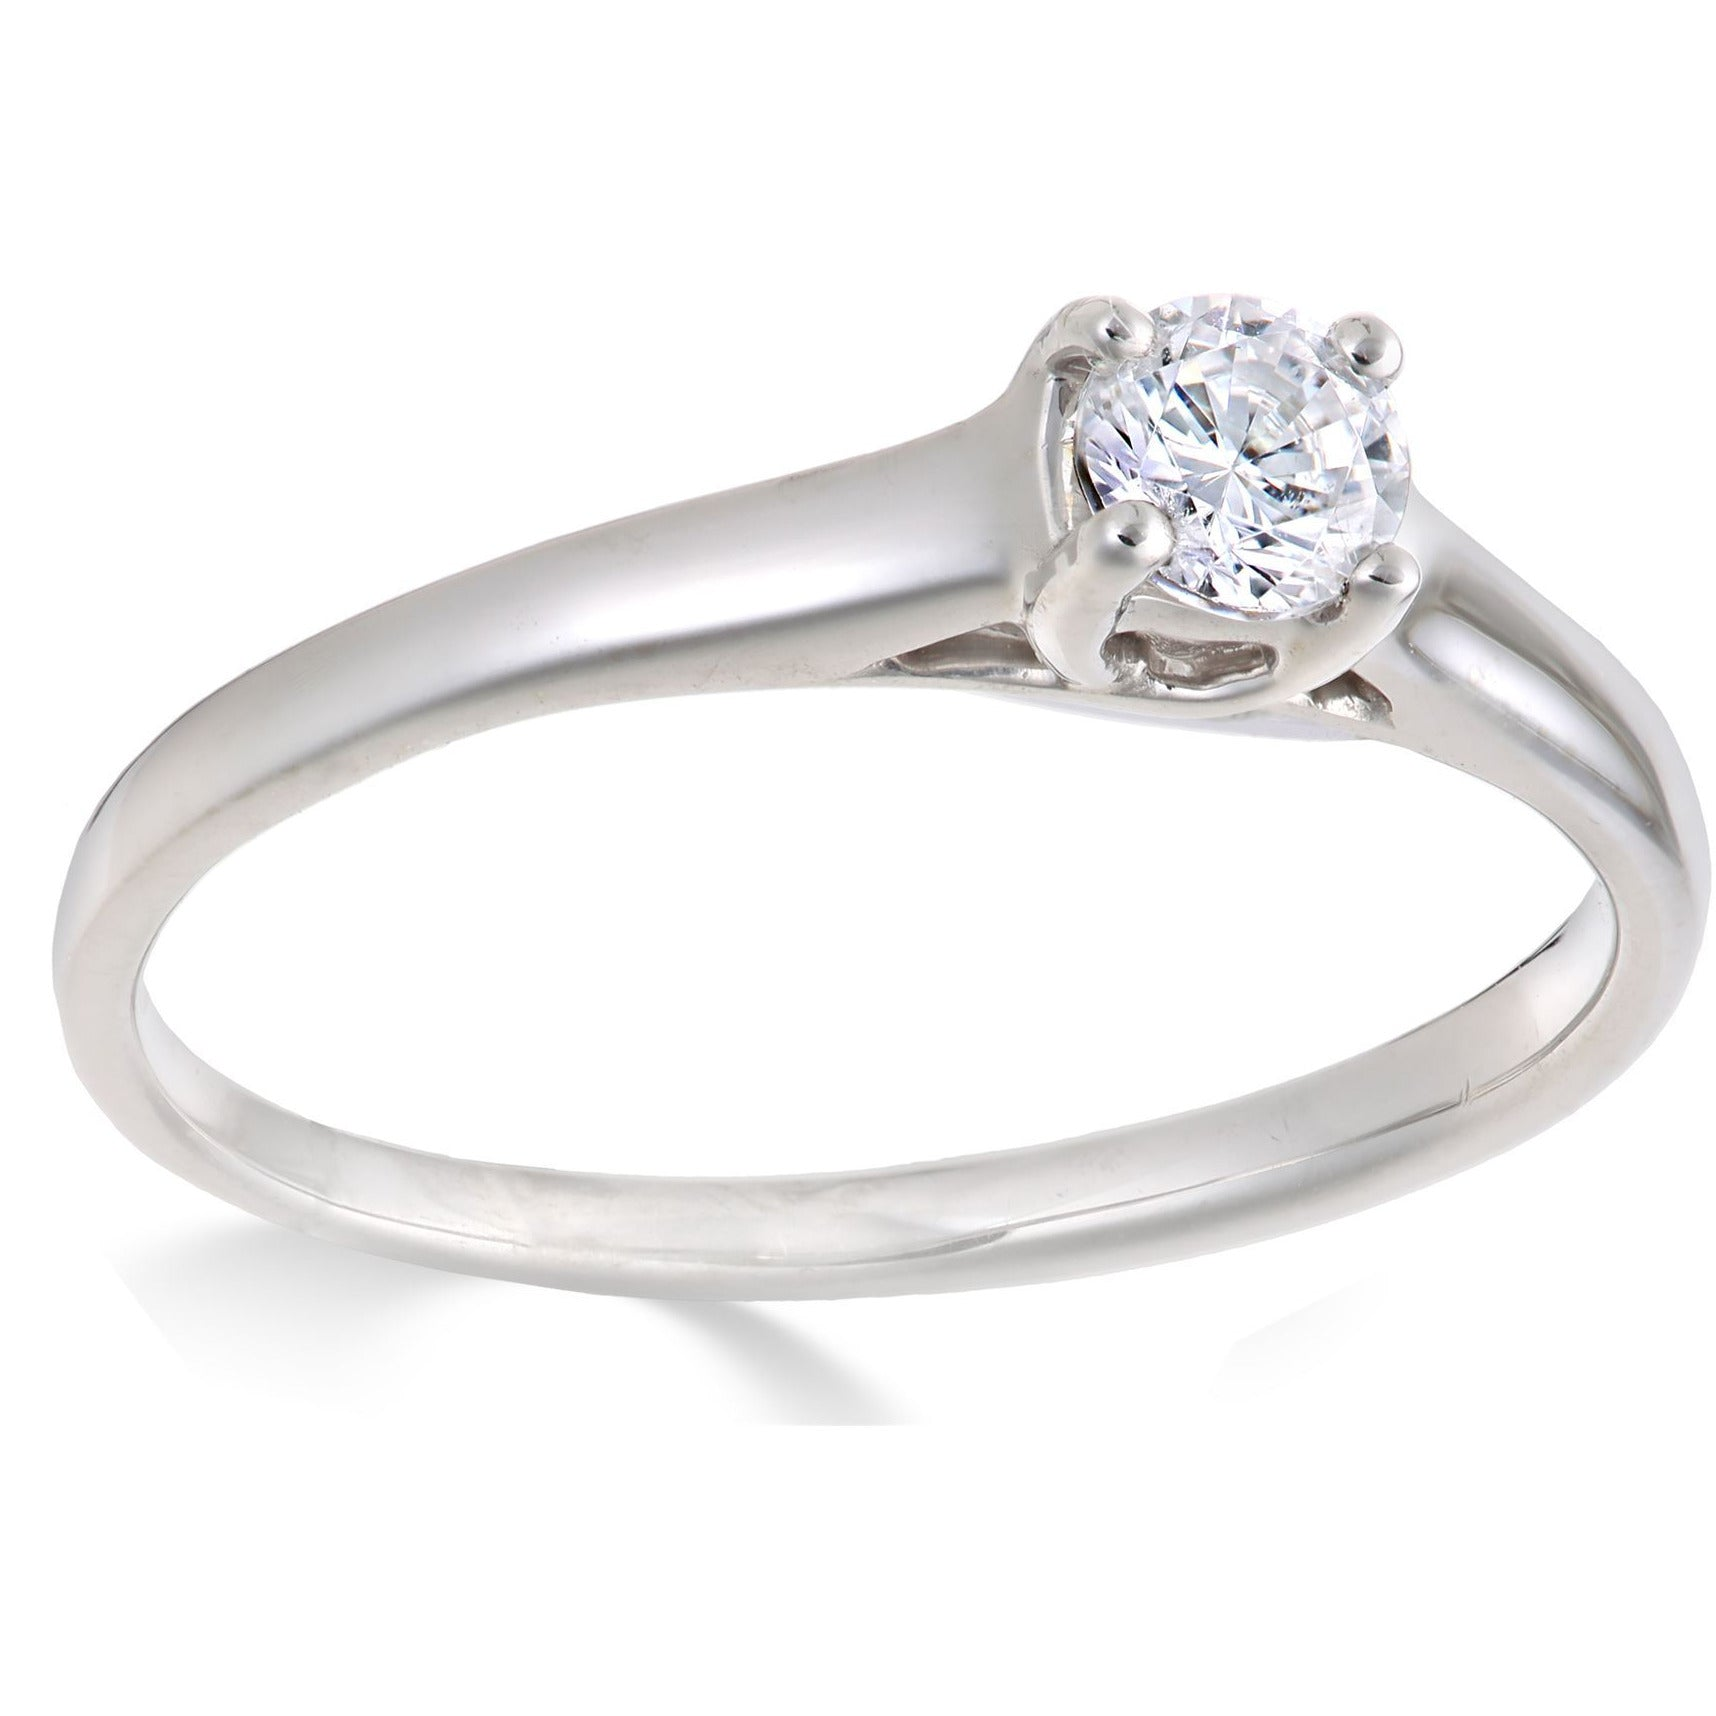 DIAMOND ENGAGEMENT RINGS FOR WOMEN 0.20 CARAT PREMIUM QUALITY IN WHITE GOLD - G&S Diamonds